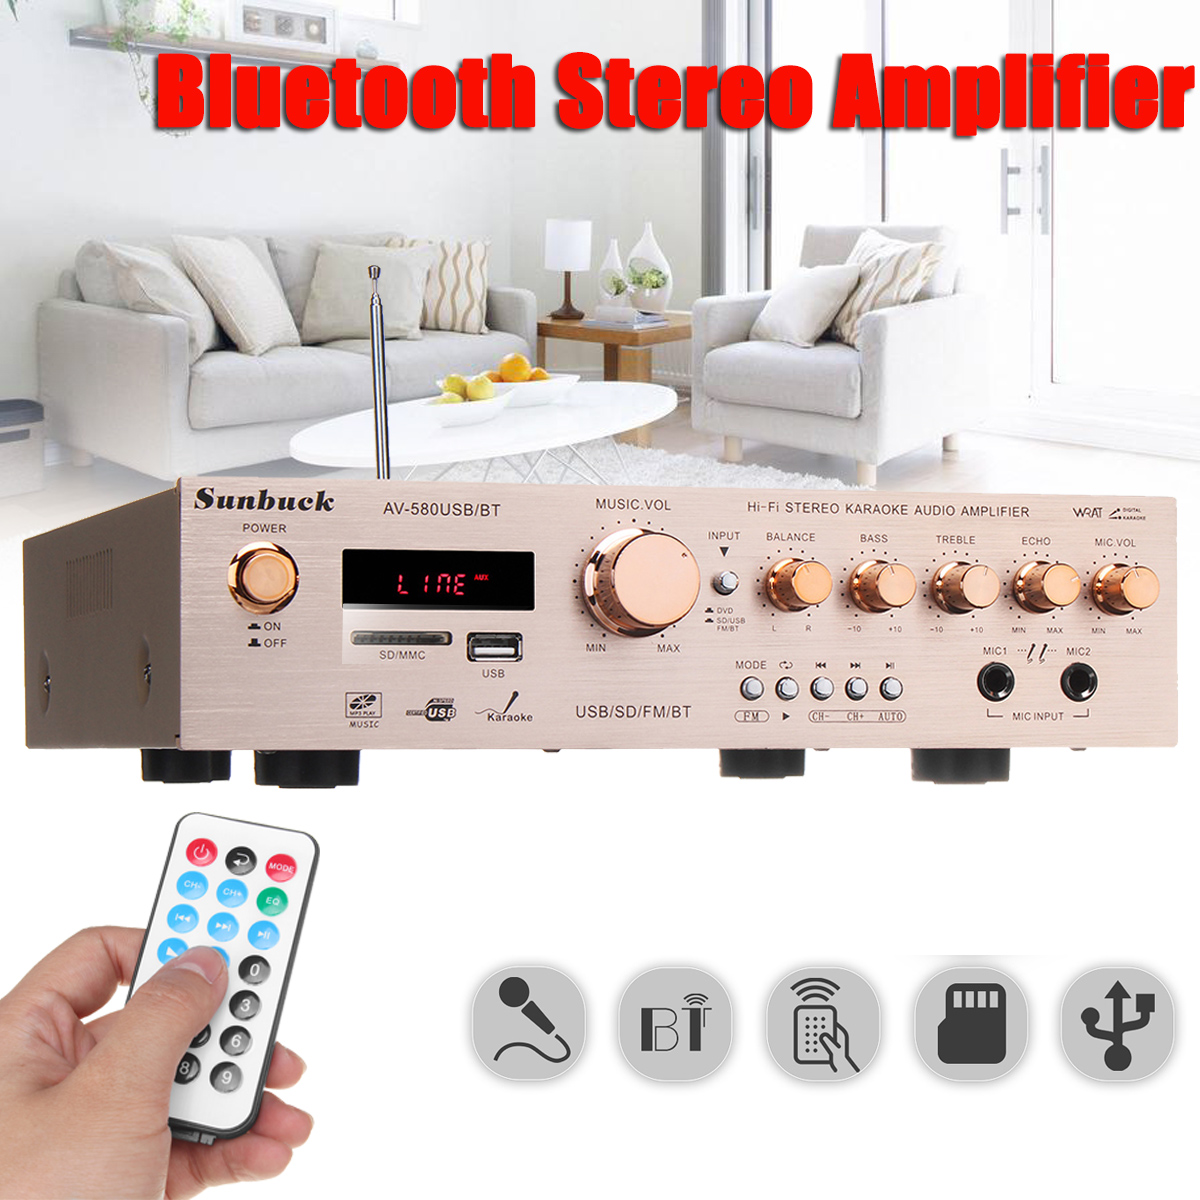 920 w 220 v 5CH Bluetooth HiFi Stereo AV Surround Amplificatore FM Karaoke Home cinema Home Theater Amplificatori